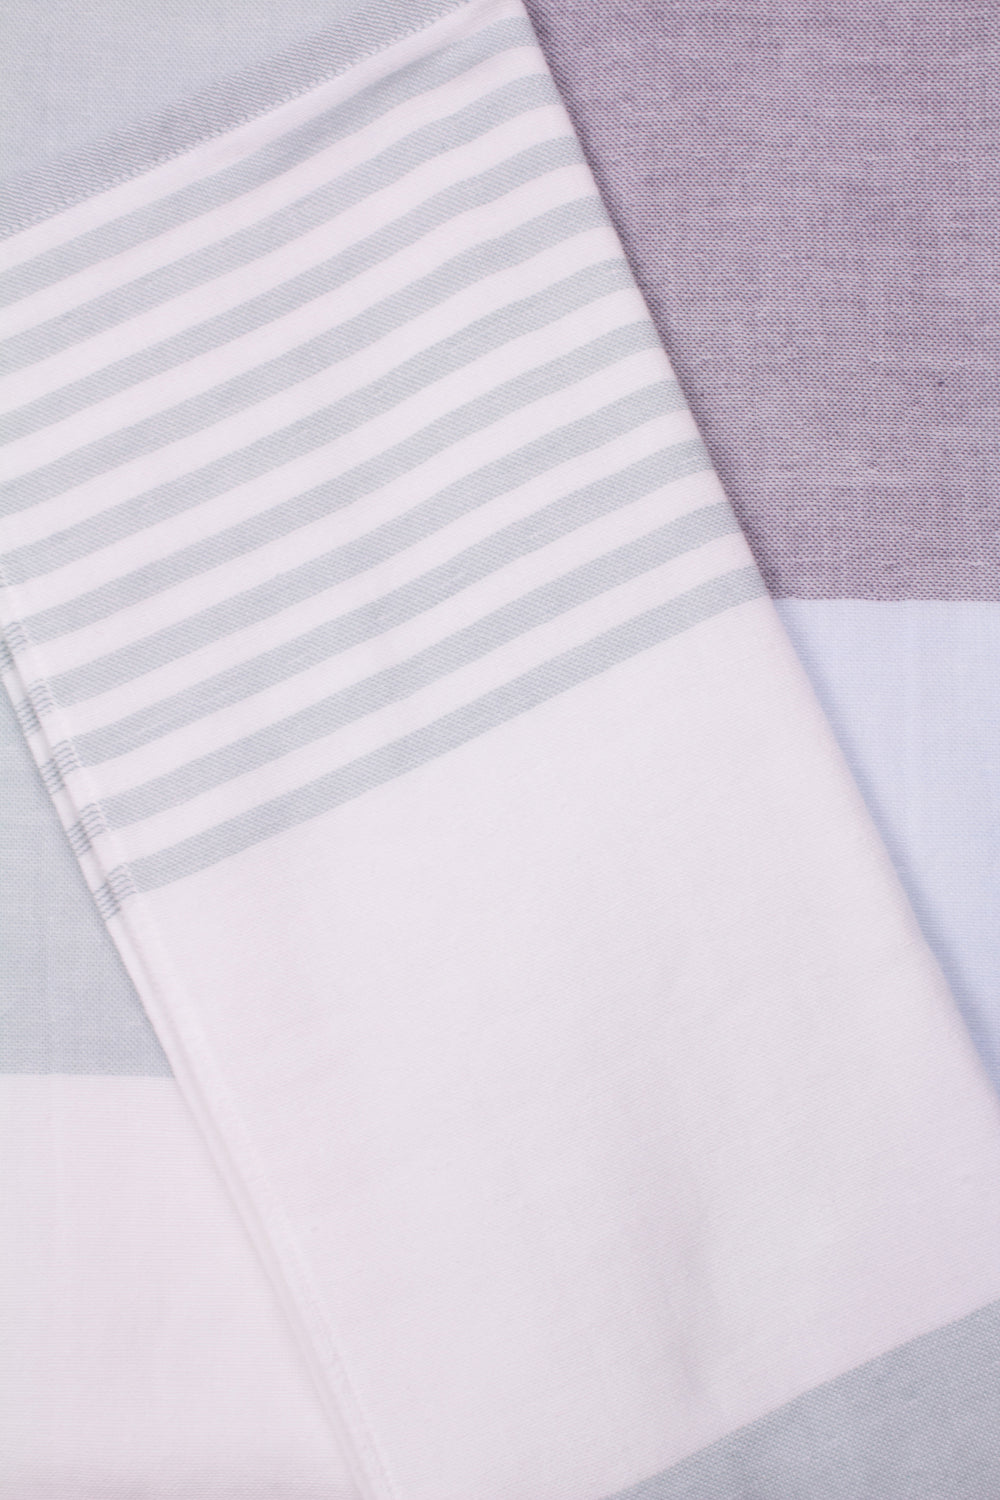 Tri-Color Chambray Towel